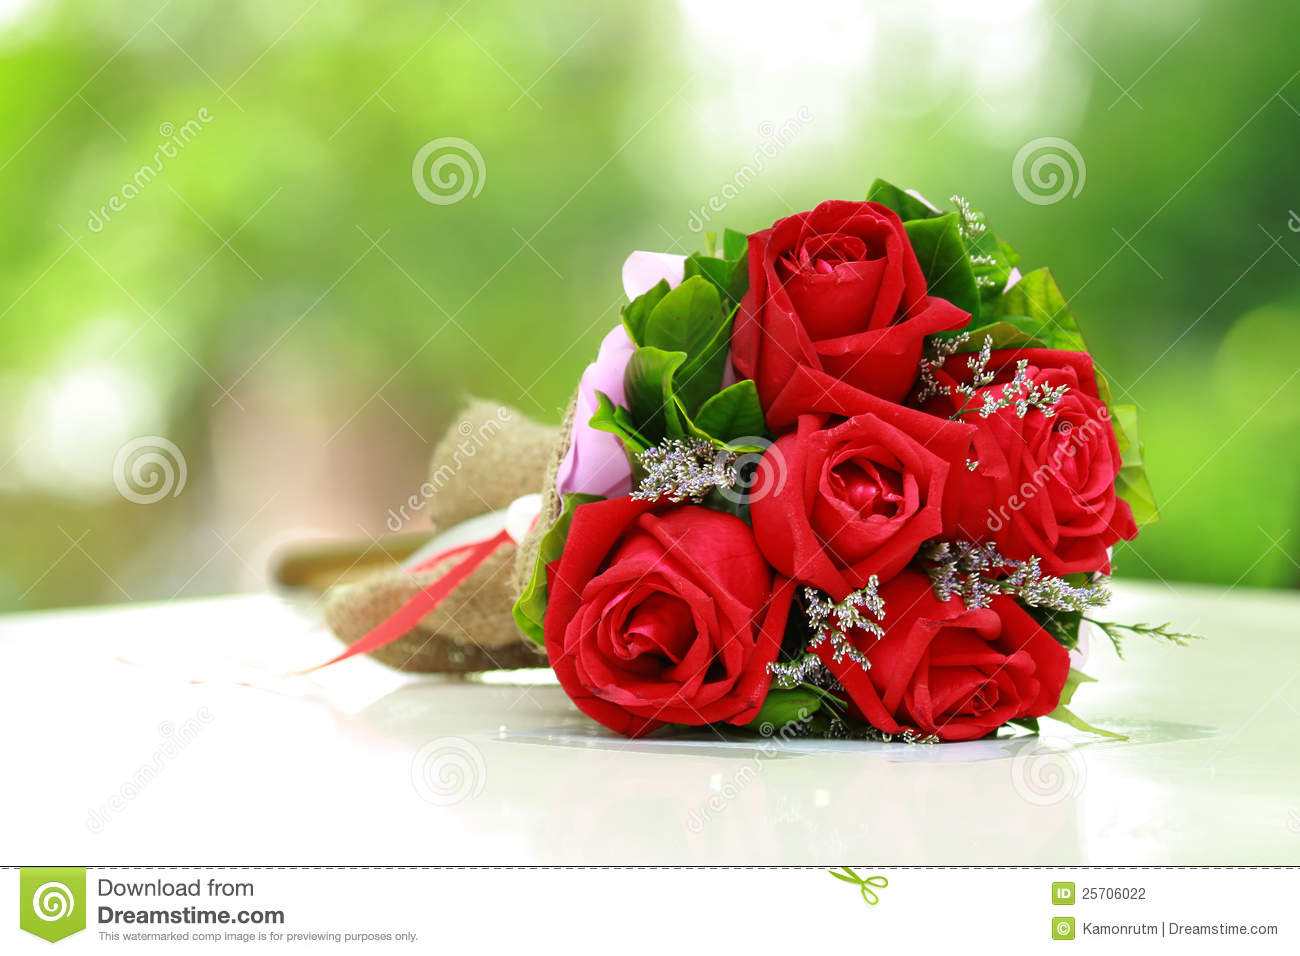 Beautiful bouquet of bright red flowers stock photo image of beautiful bouquet of bright red flowers izmirmasajfo Images